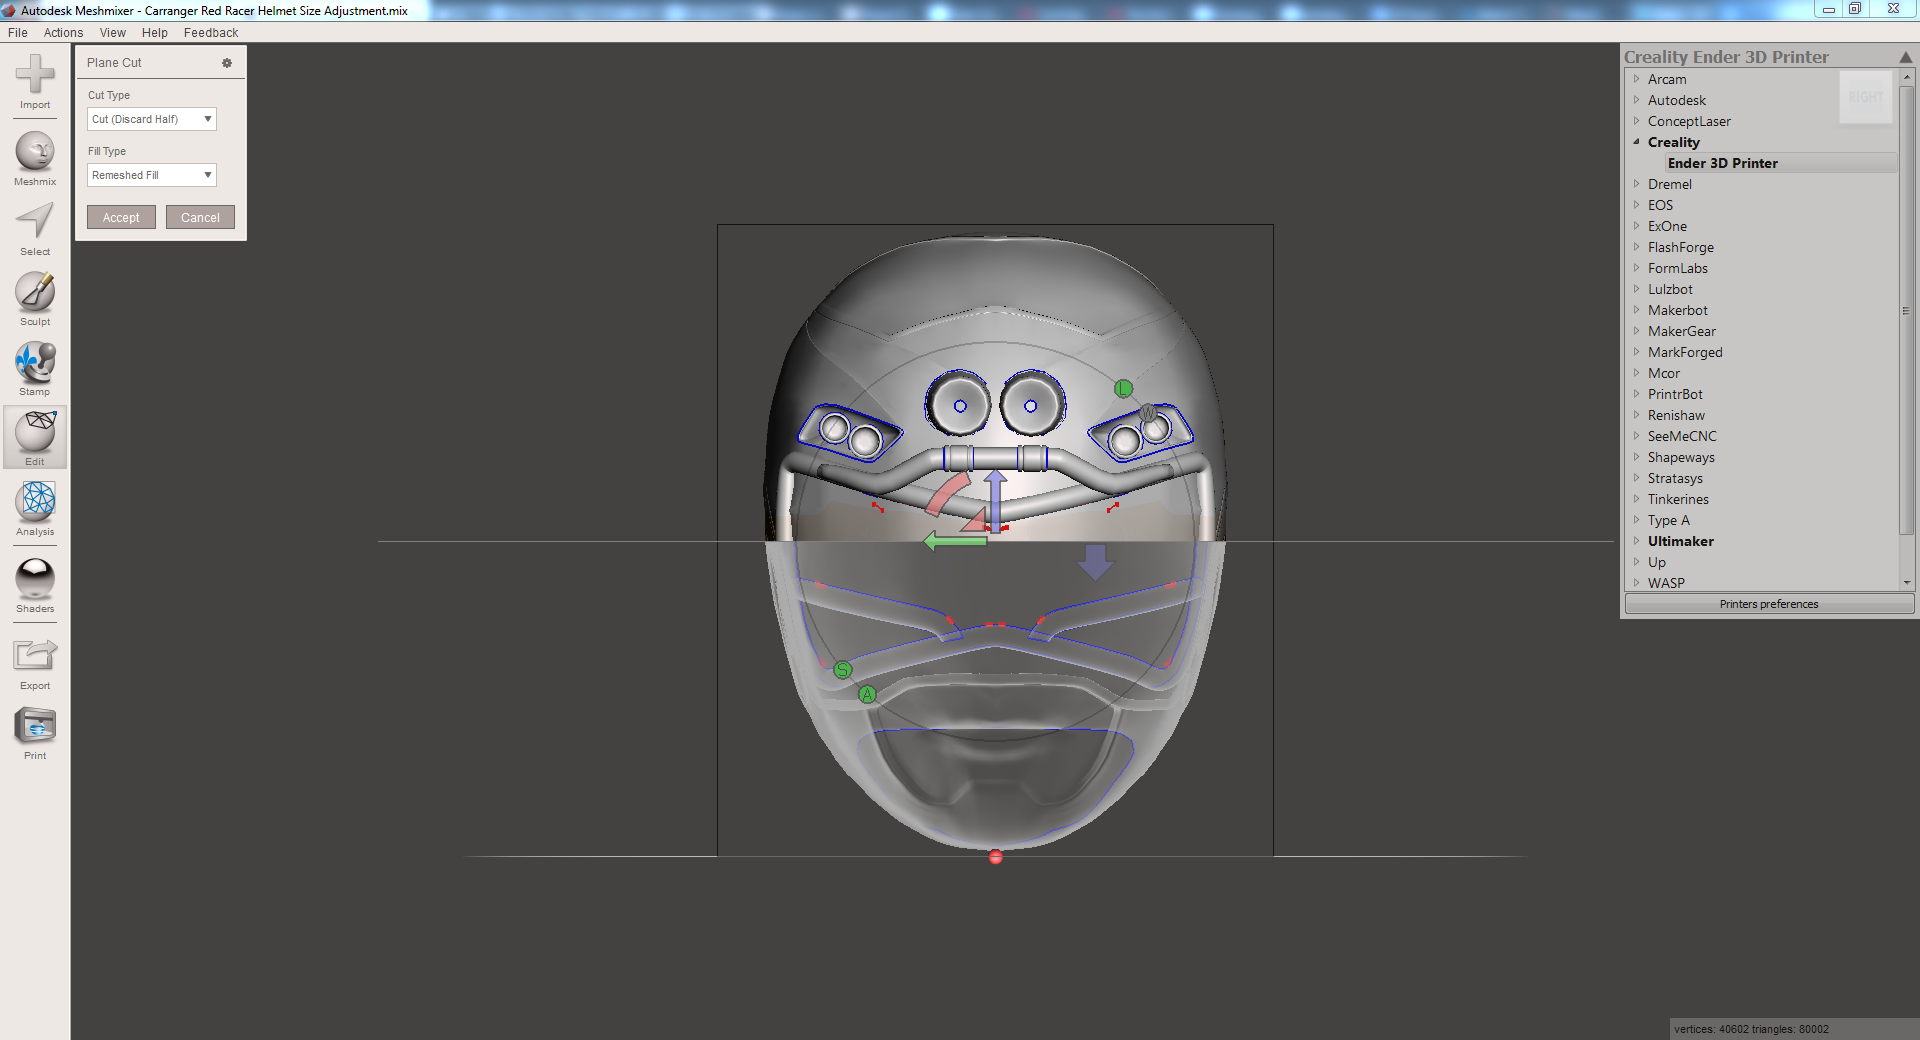 2019-01-18 09_18_27-Autodesk Meshmixer - Carranger Red Racer Helmet Size Adjustment.mix.png